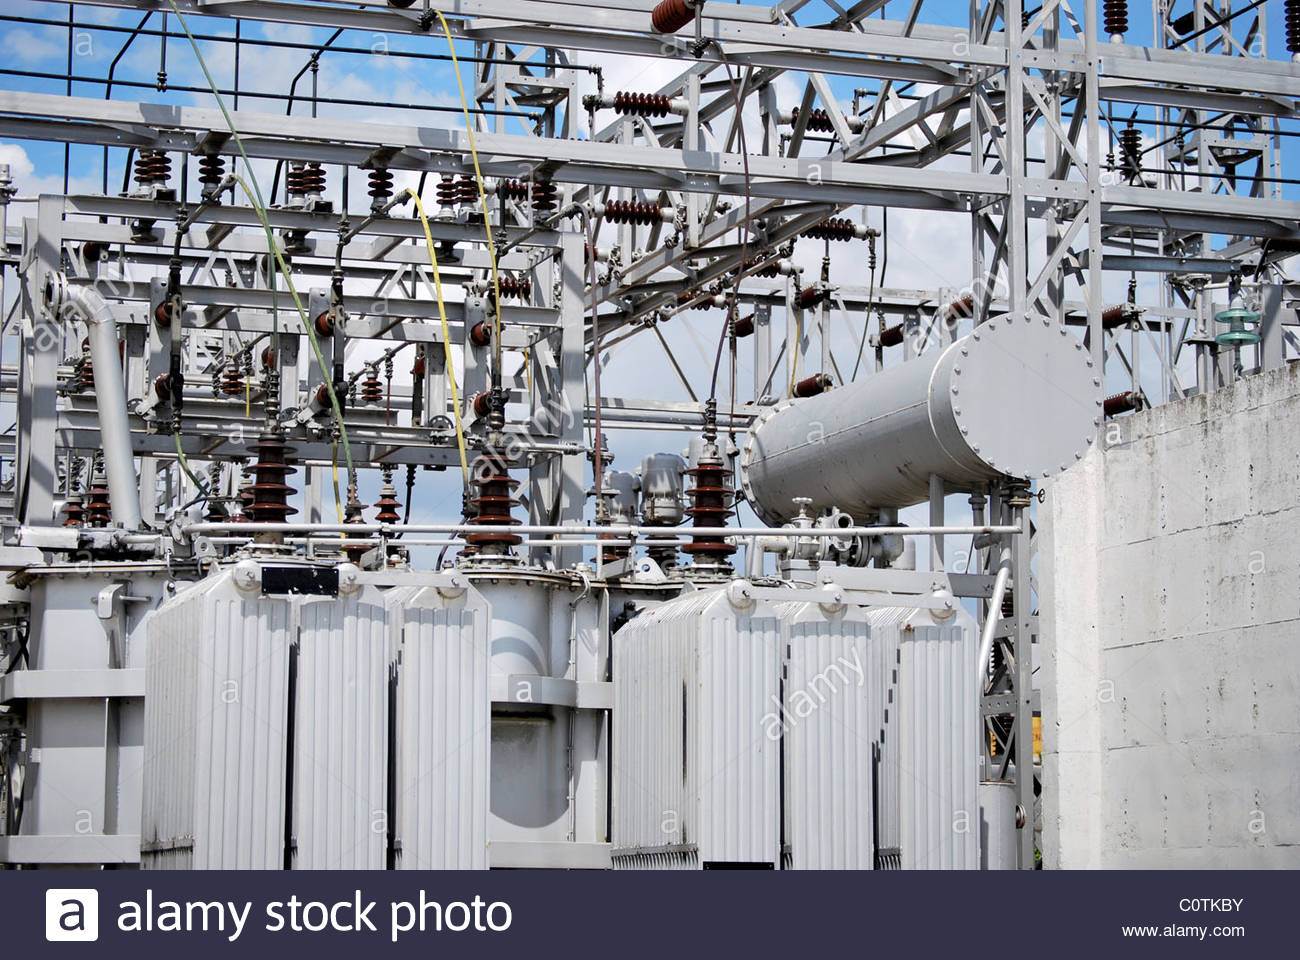 Electrical transform station. Caution High voltage. Energy concept - Stock Image